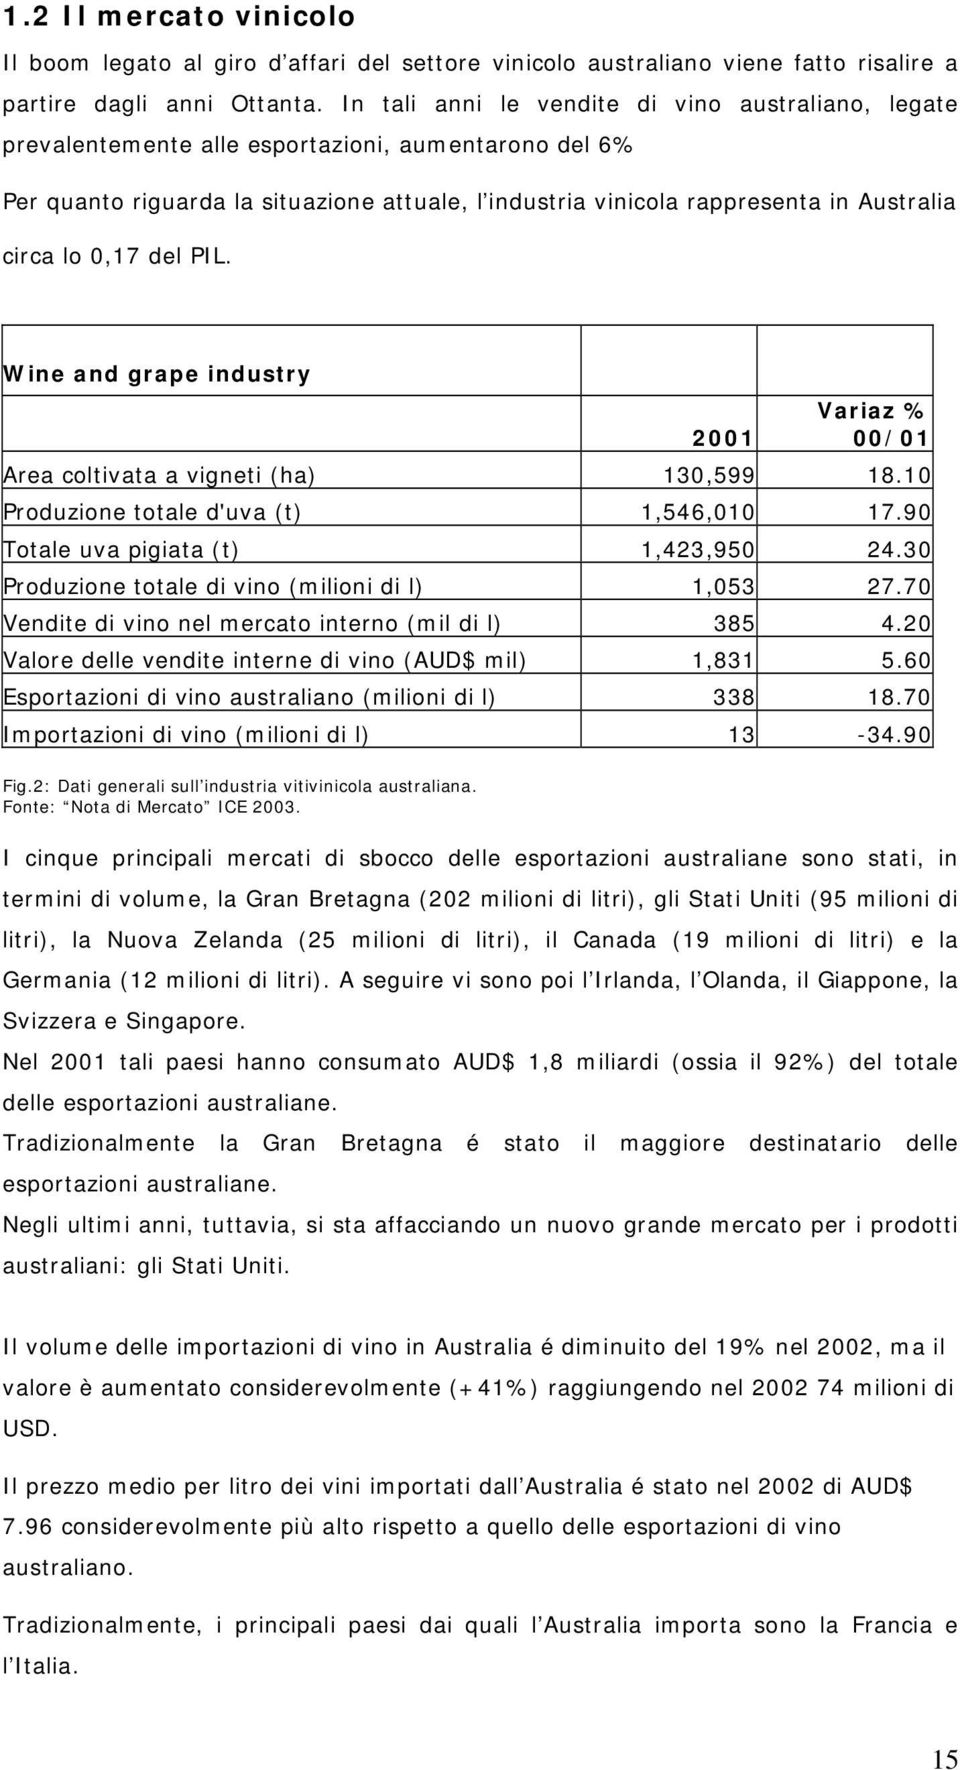 circa lo 0,17 del PIL. Wine and grape industry Variaz % 2001 00/01 Area coltivata a vigneti (ha) 130,599 18.10 Produzione totale d'uva (t) 1,546,010 17.90 Totale uva pigiata (t) 1,423,950 24.